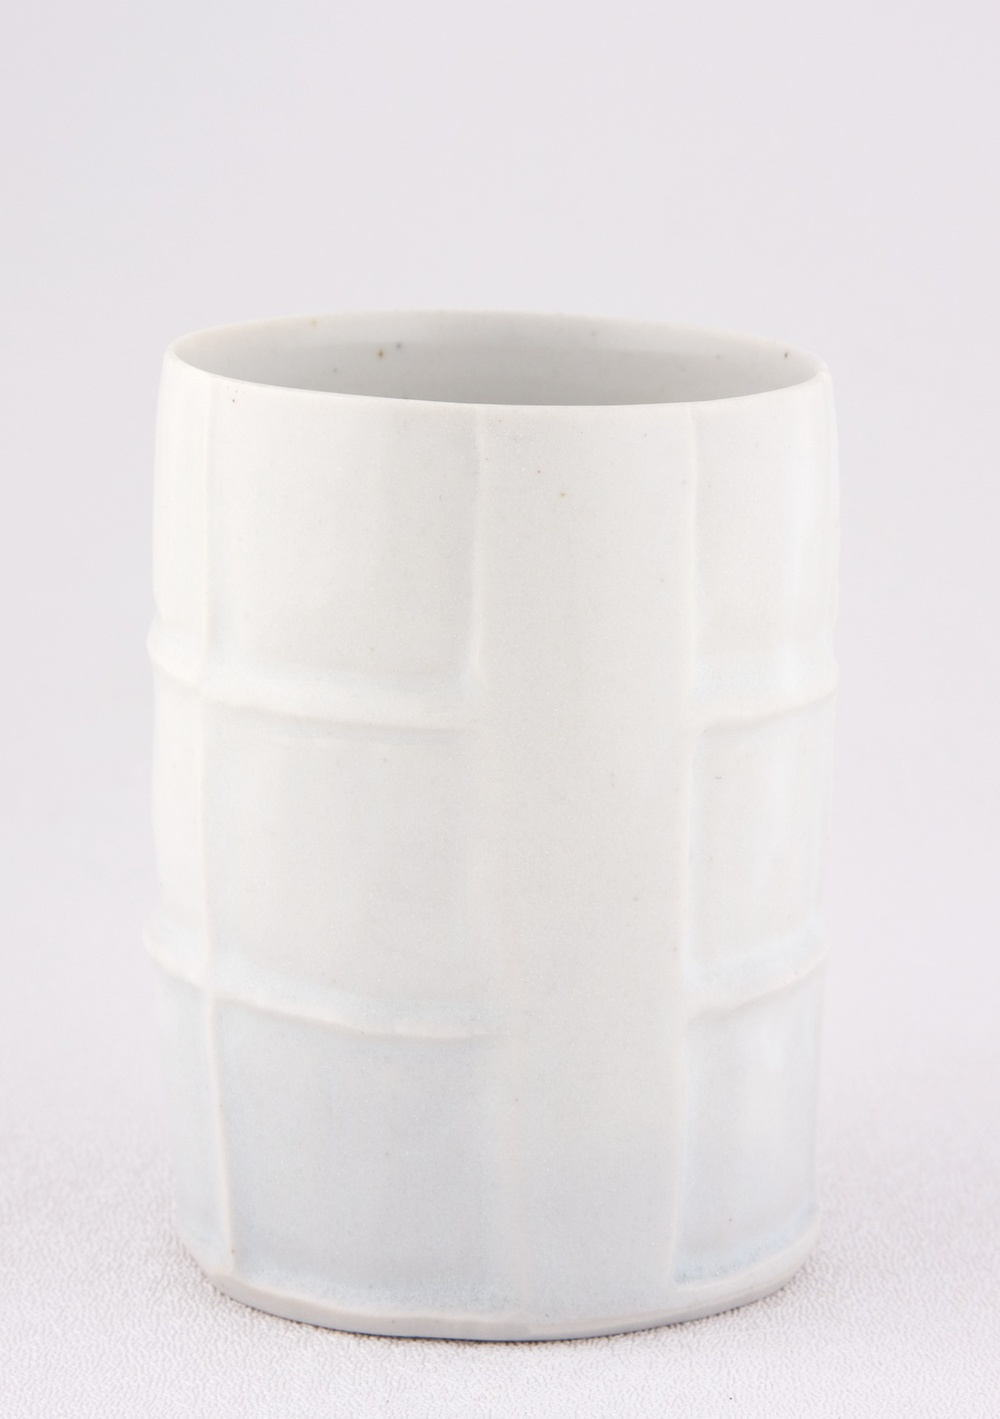 Shio Kusaka  Untitled (cup)  2009 Porcelain 3 ⅝h x 2 ¾w x 2 ¾d in SK017